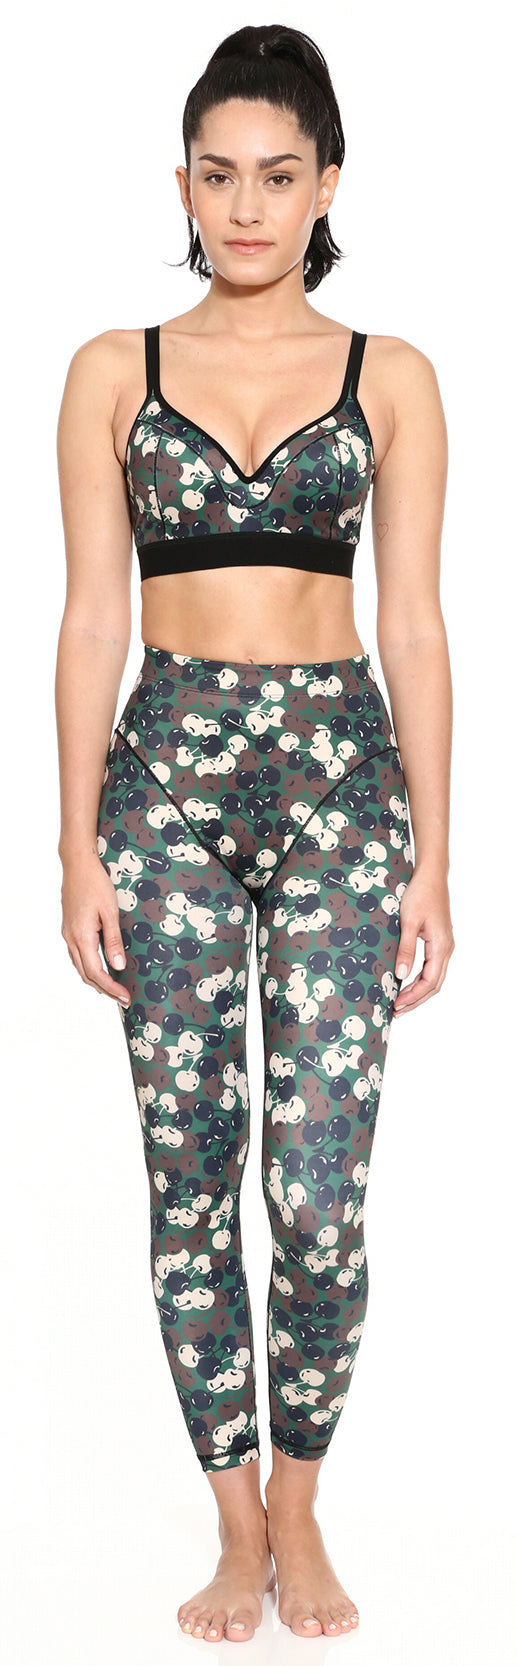 French Cut Legging - Classic Cherry Camo